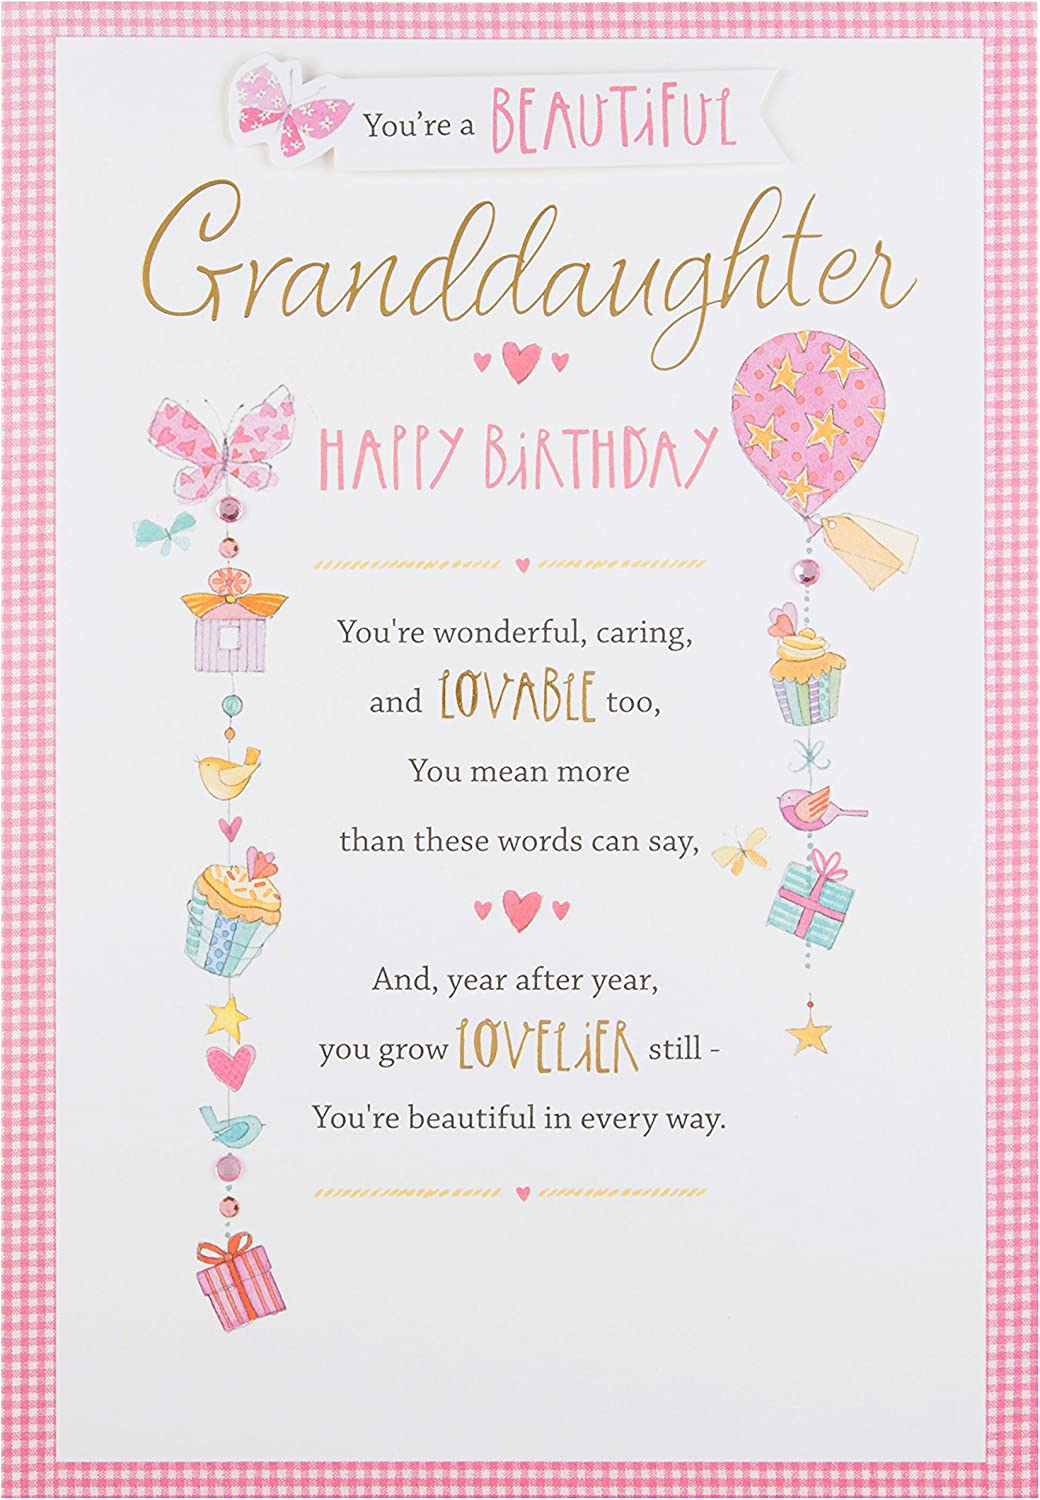 Standard Size Birthday Cards Granddaughter Greeting Cards & Party ...